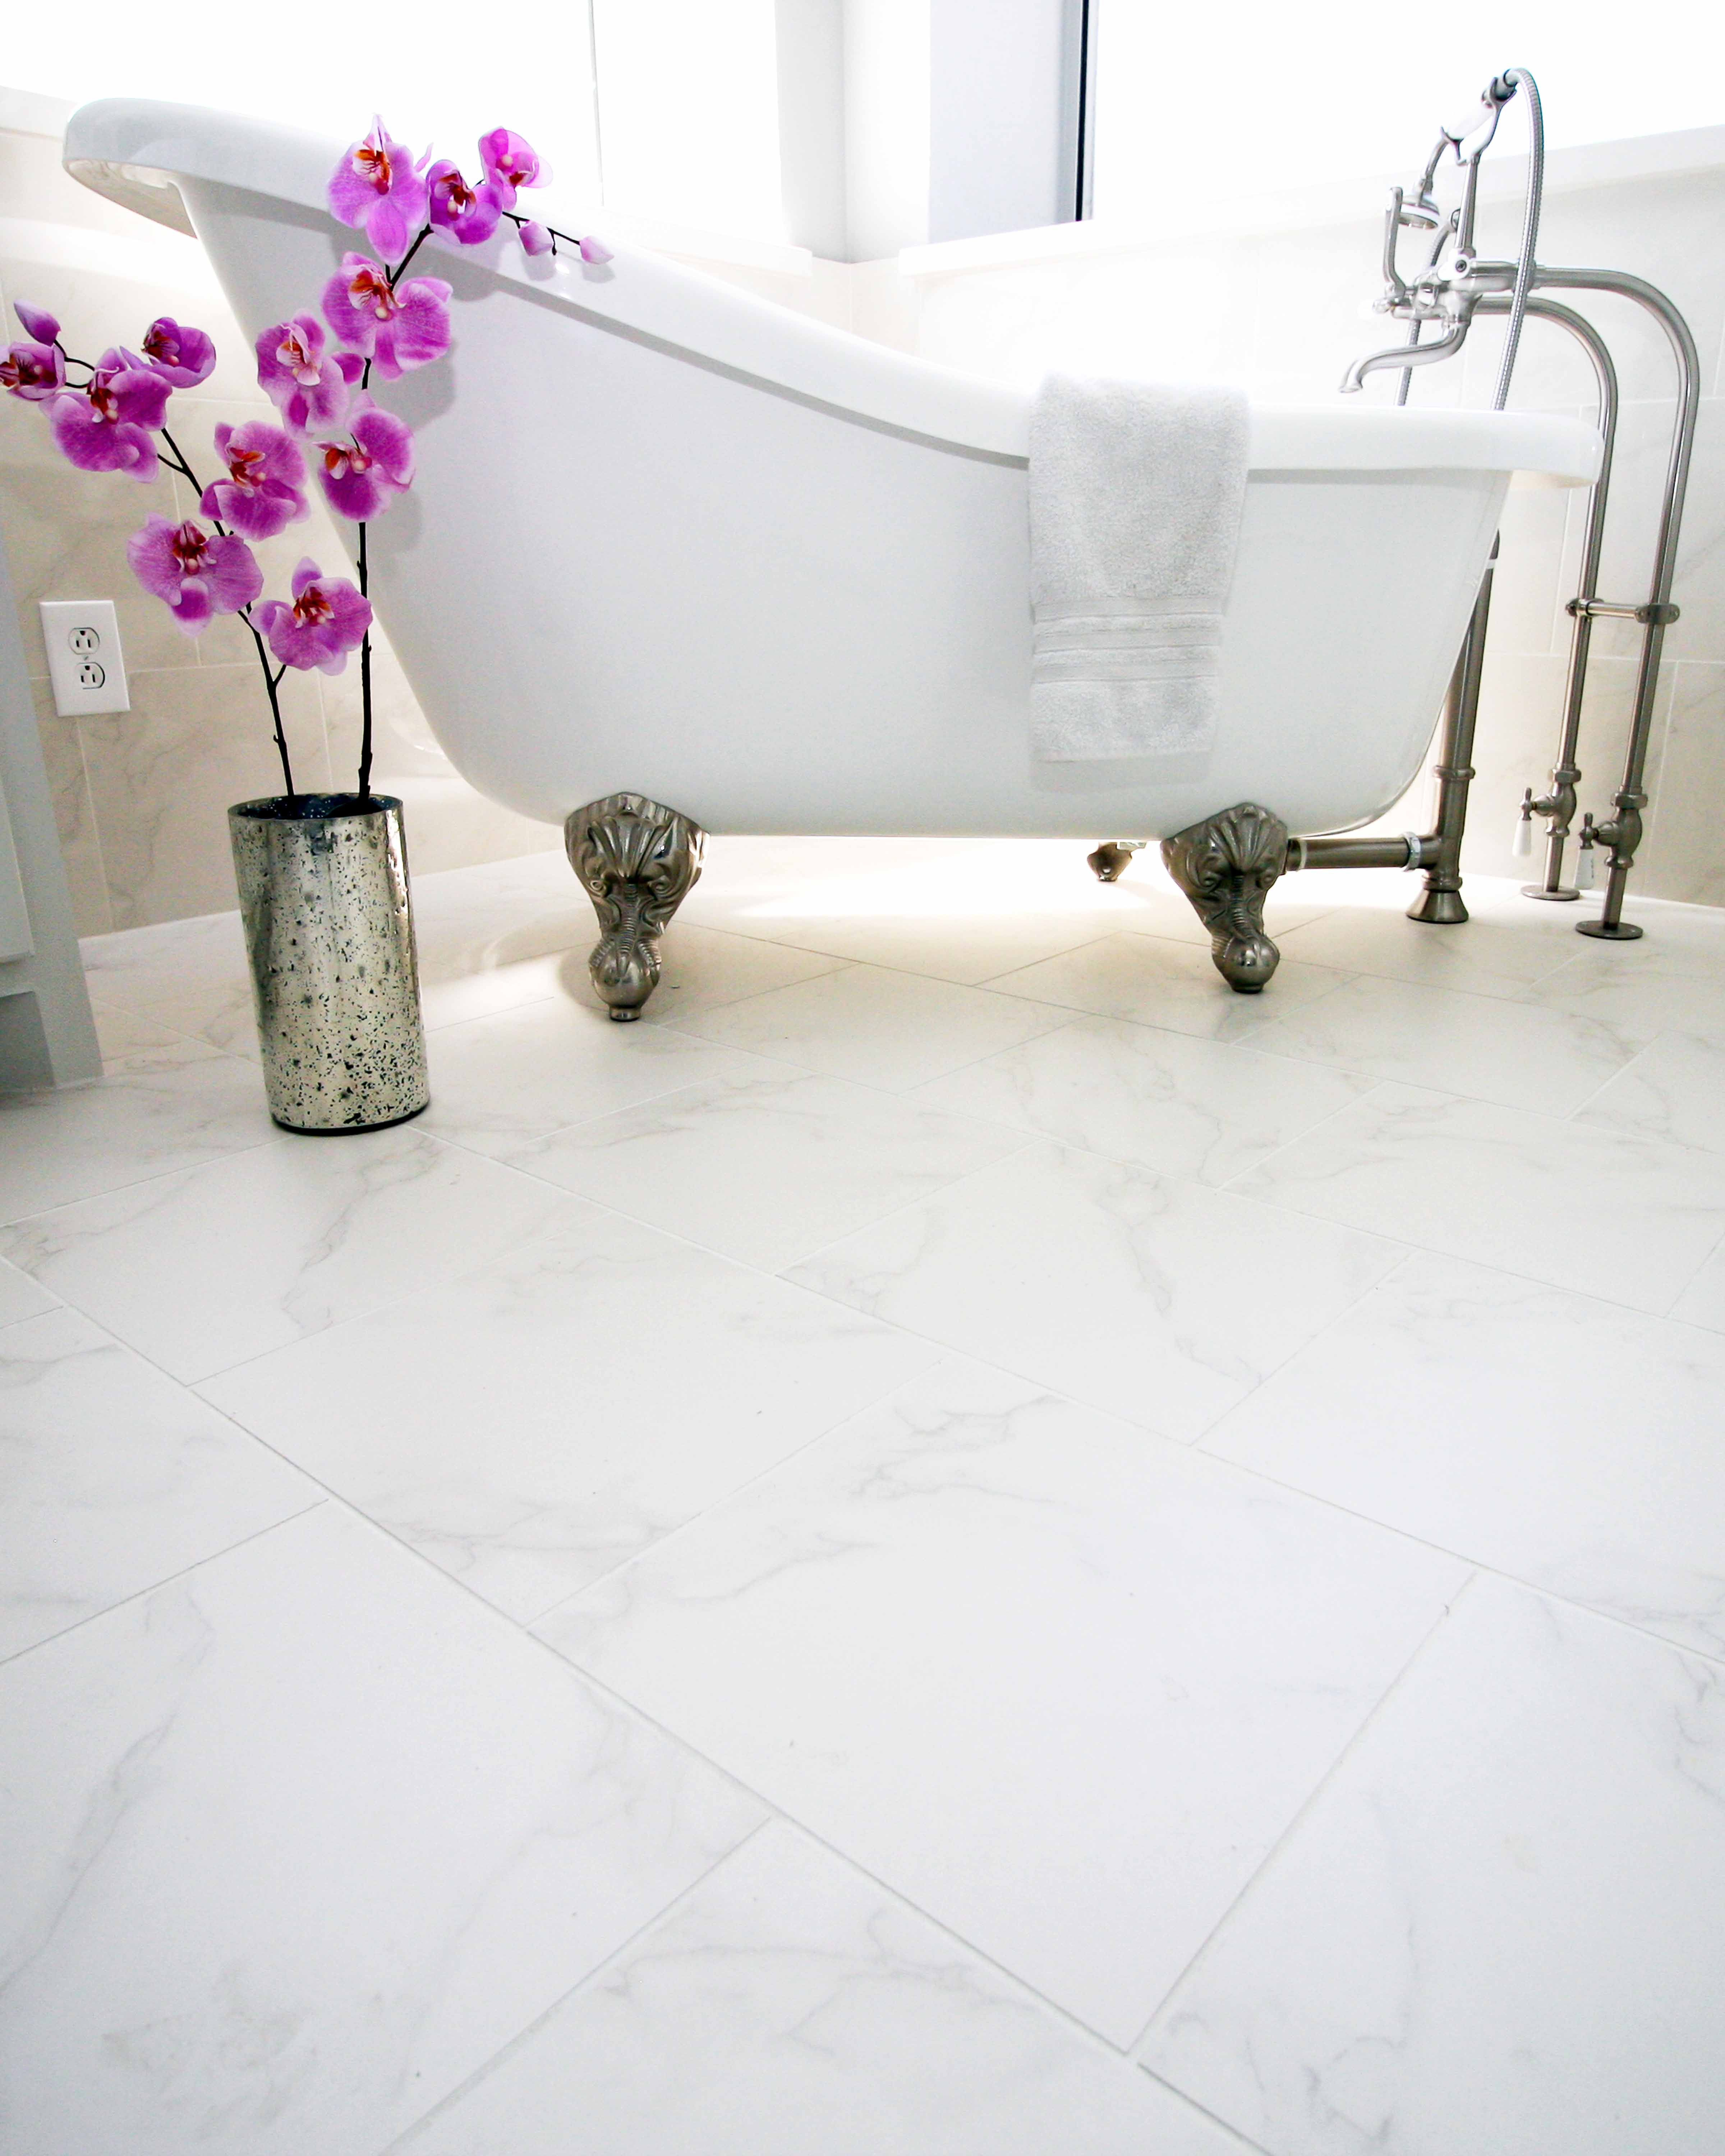 Tuesdaytile Highlights A Gorgeous Claw Foot Tub And Installation By